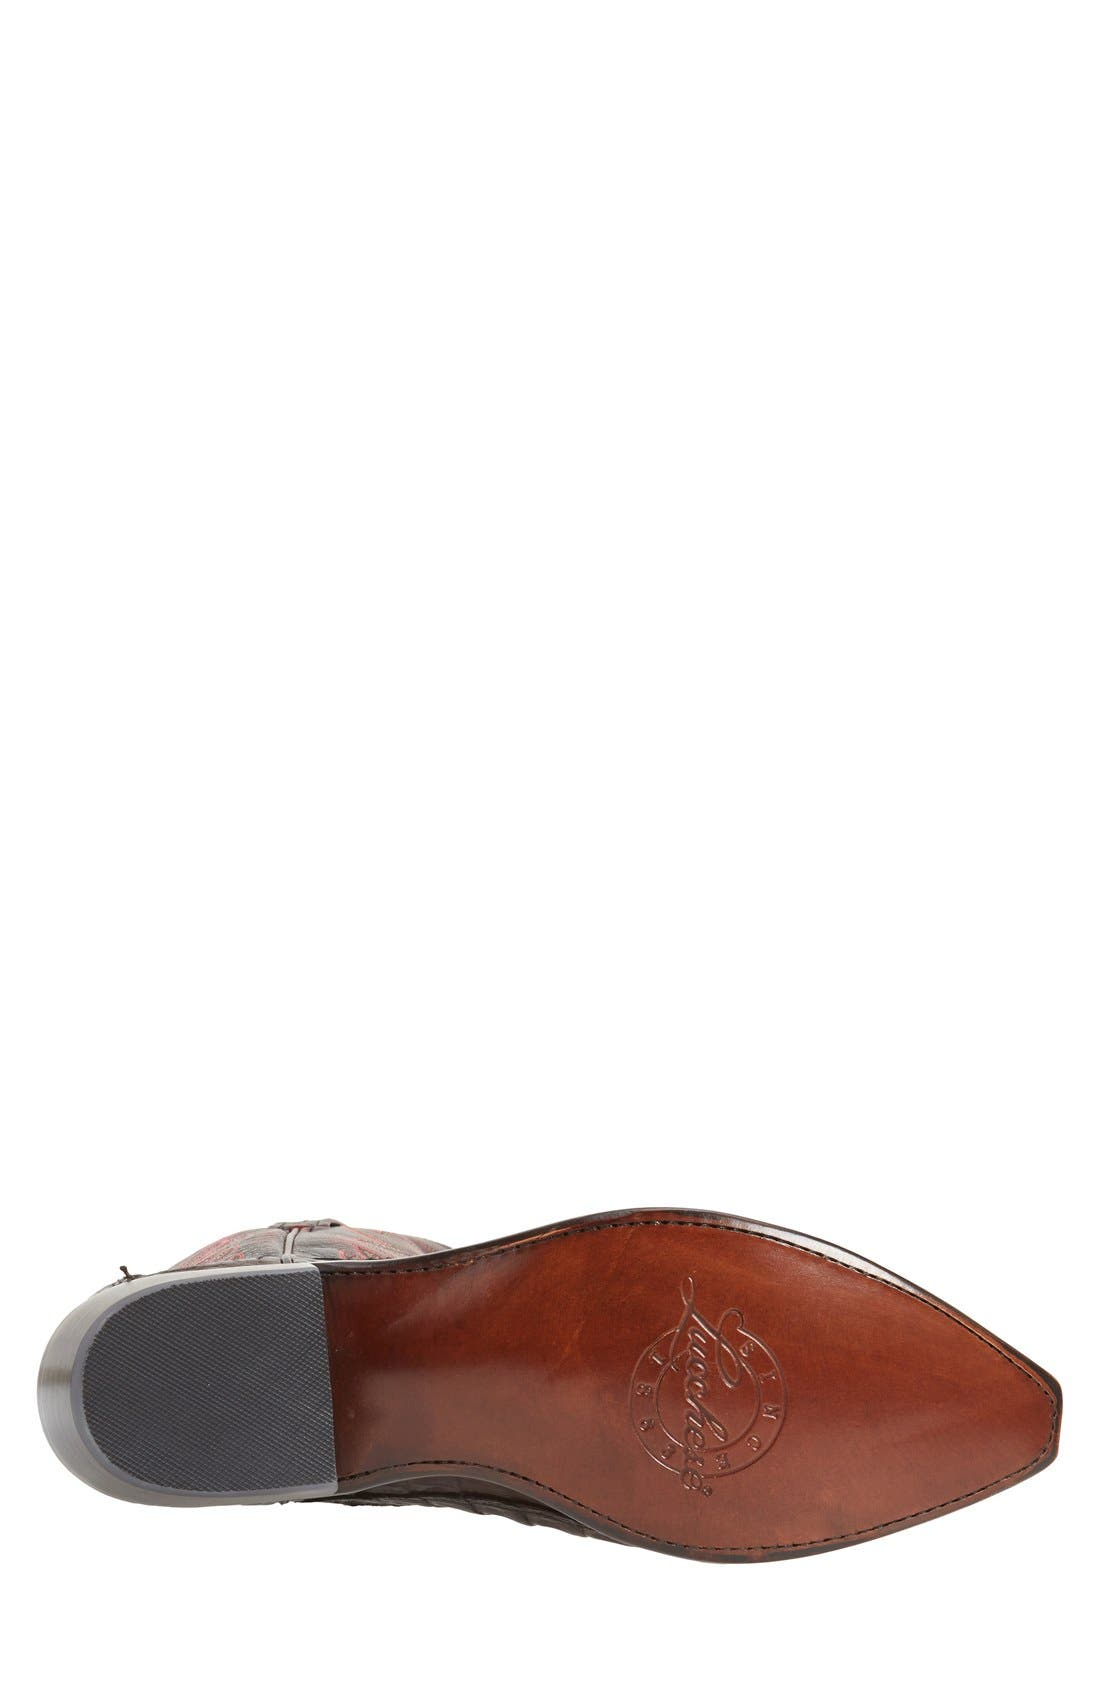 LUCCHESE,                             'Landon' Western Boot,                             Alternate thumbnail 2, color,                             214